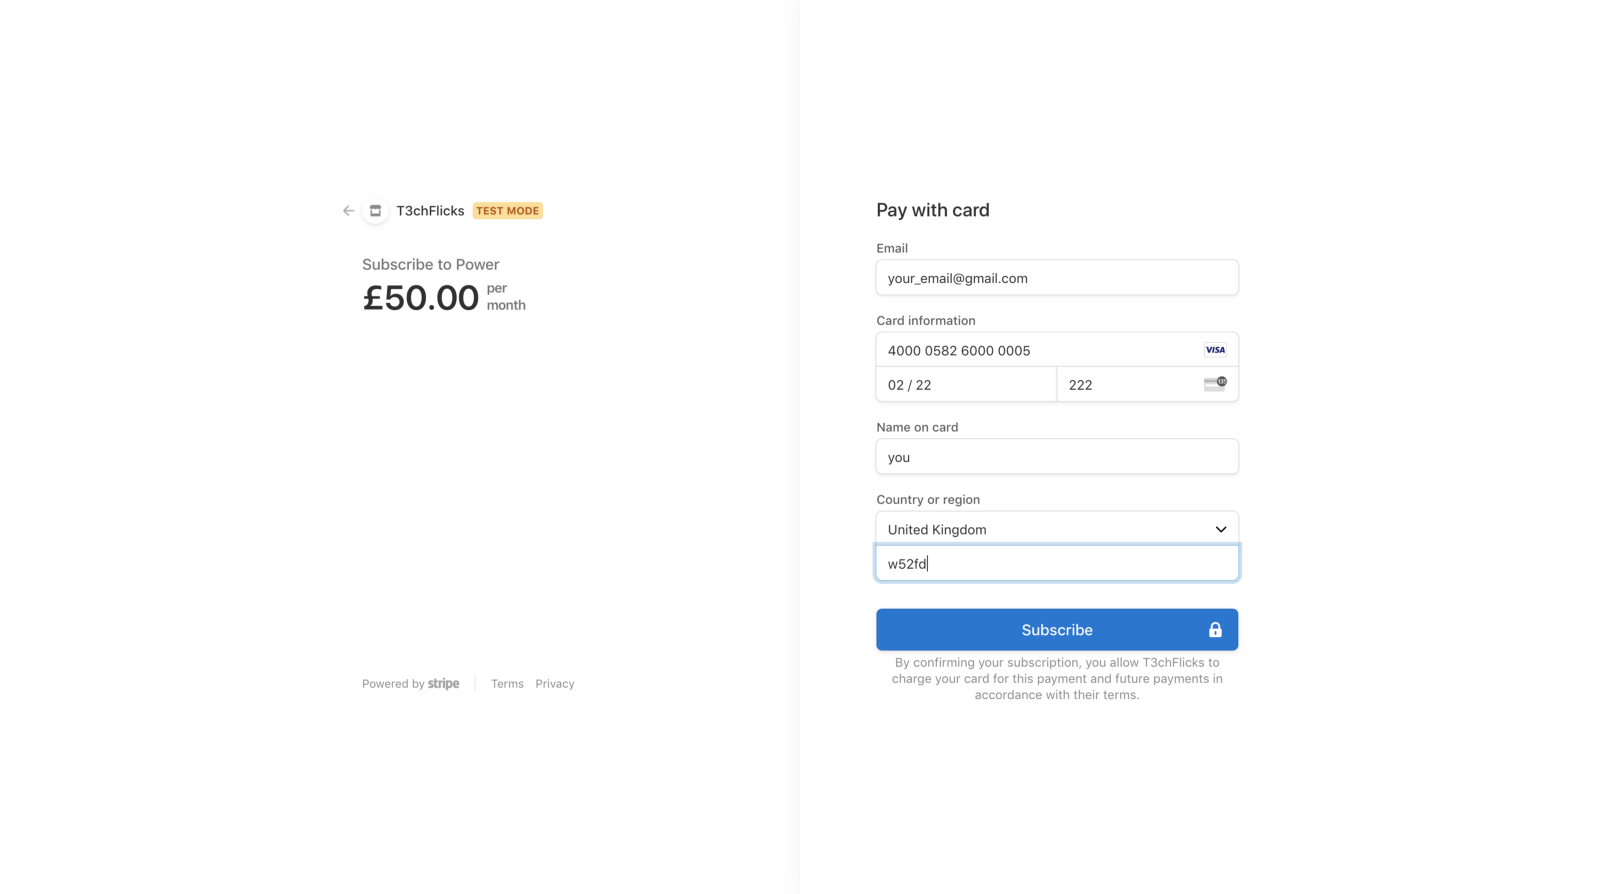 Stripe Checkout Page for Power Subscription